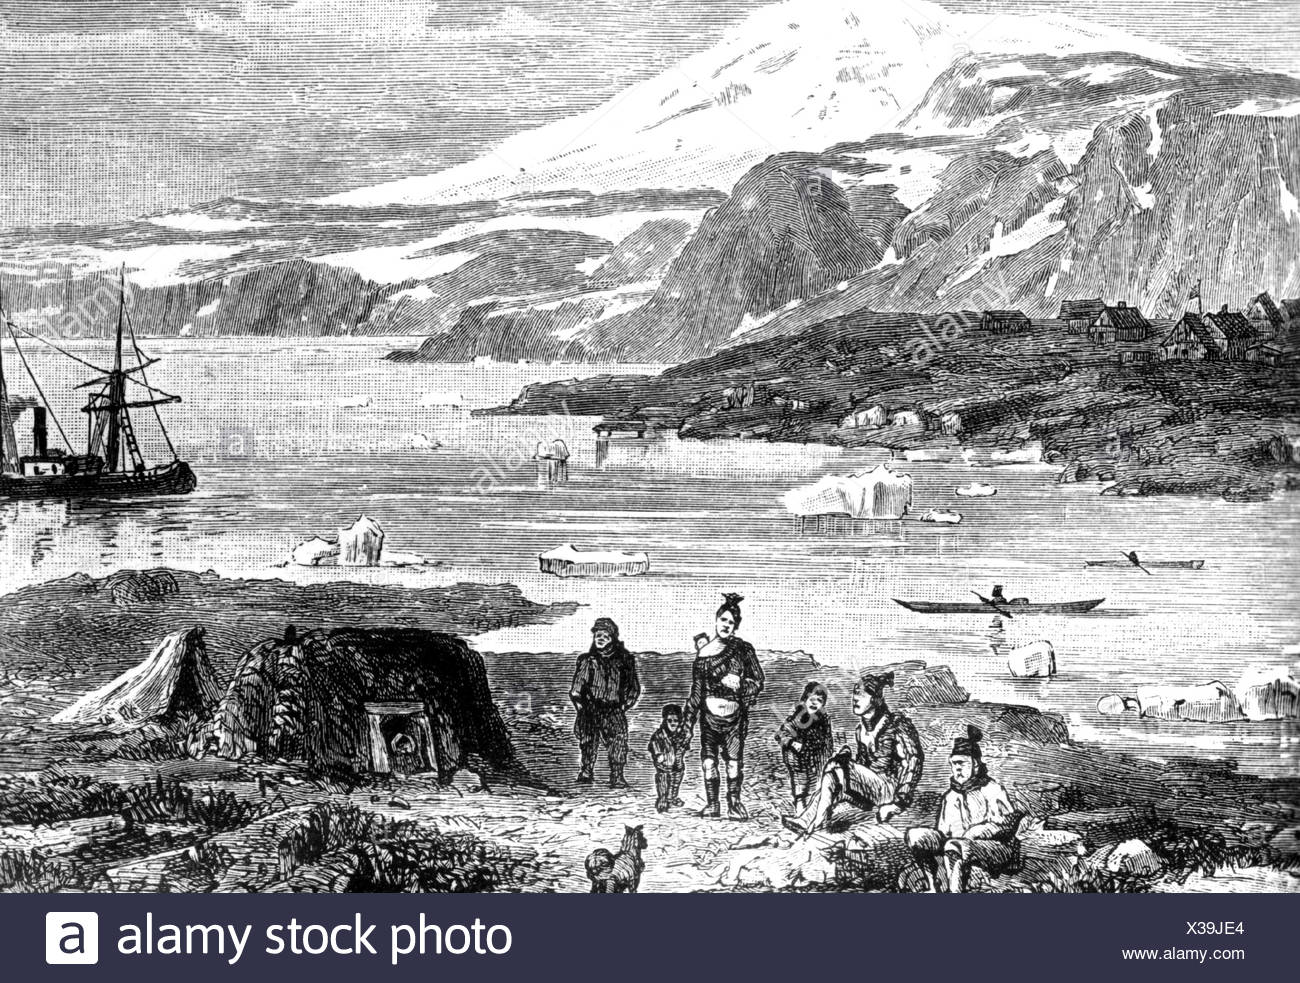 Rasmussen, Knud, 7.6.1879 - 21.12.1933, Danish Greenlandic polar explorer, Upernavik colony, west coast of Greenland, anonymous woodcut, Additional-Rights-Clearances-NA - Stock Image